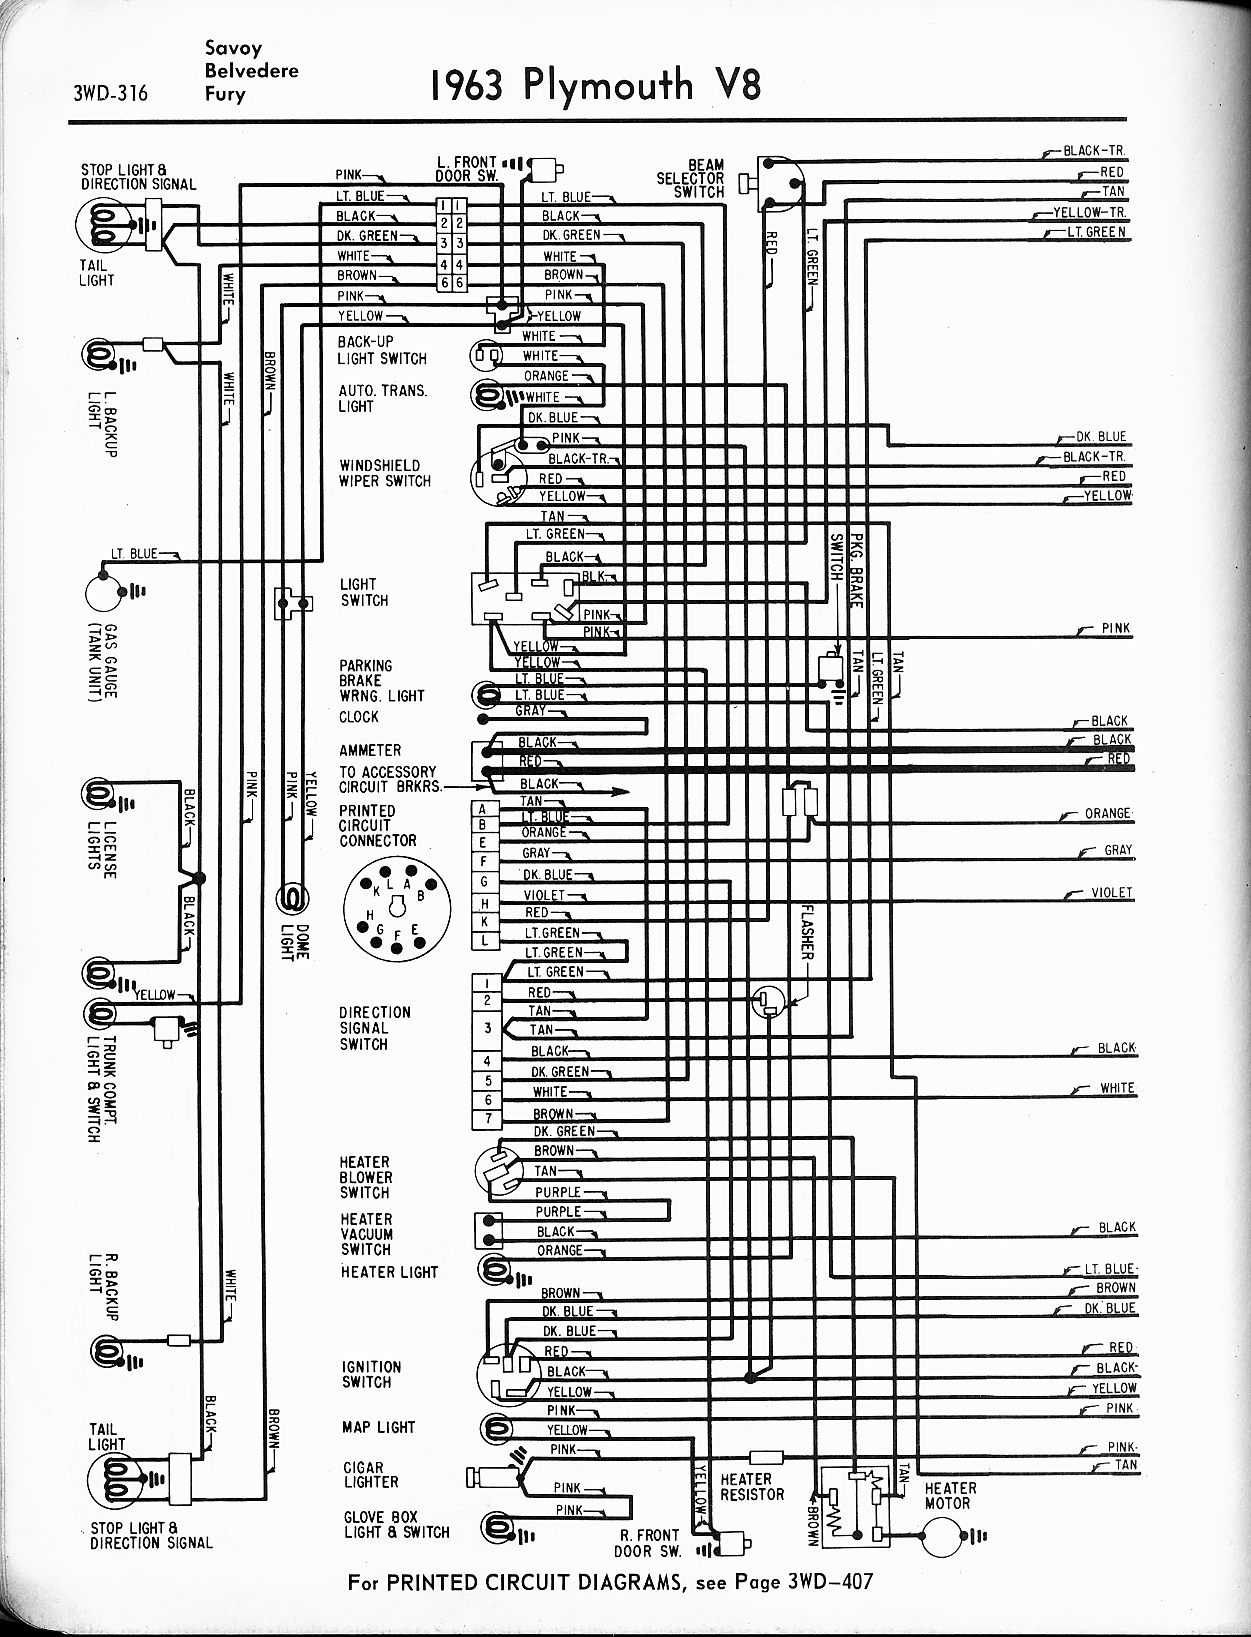 1968 fury wiring diagram example electrical wiring diagram u2022 rh cranejapan co 1967 plymouth satellite wiring diagram 1967 plymouth belvedere wiring diagram